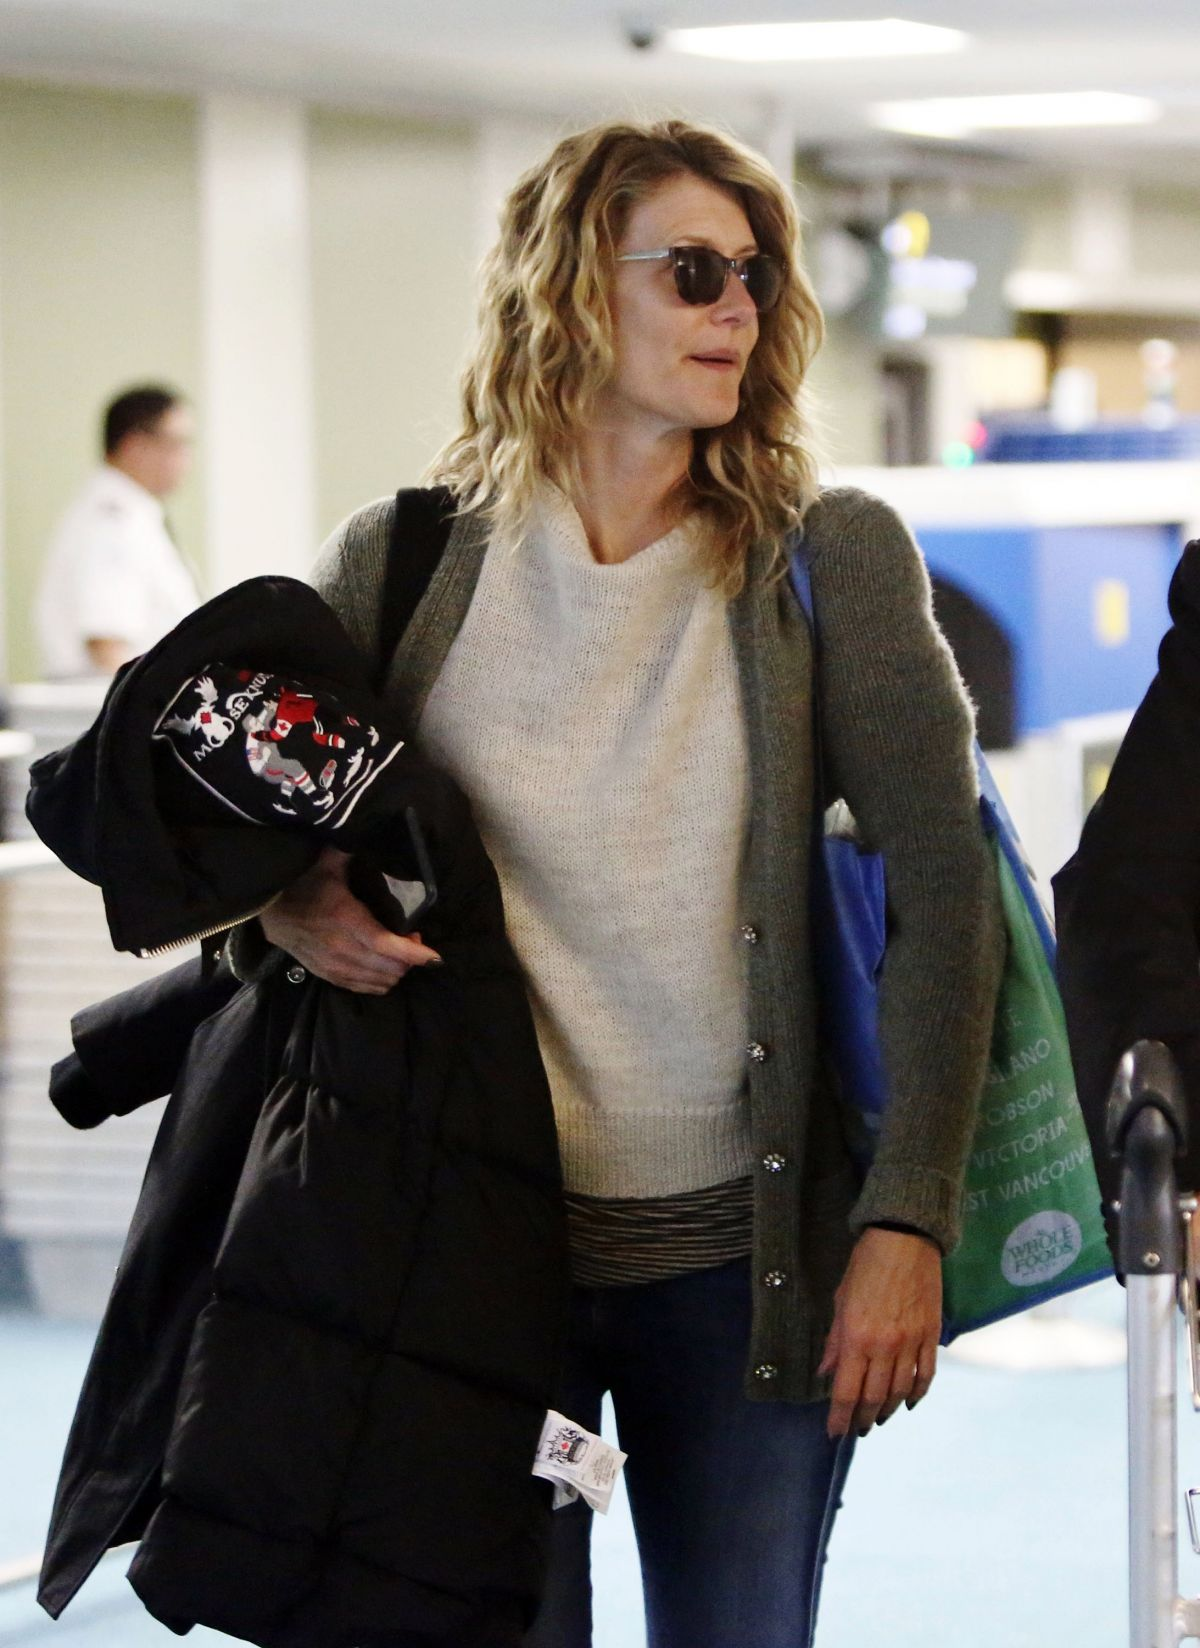 LAURA DERN at Airport in Vancouver 04/22/2017